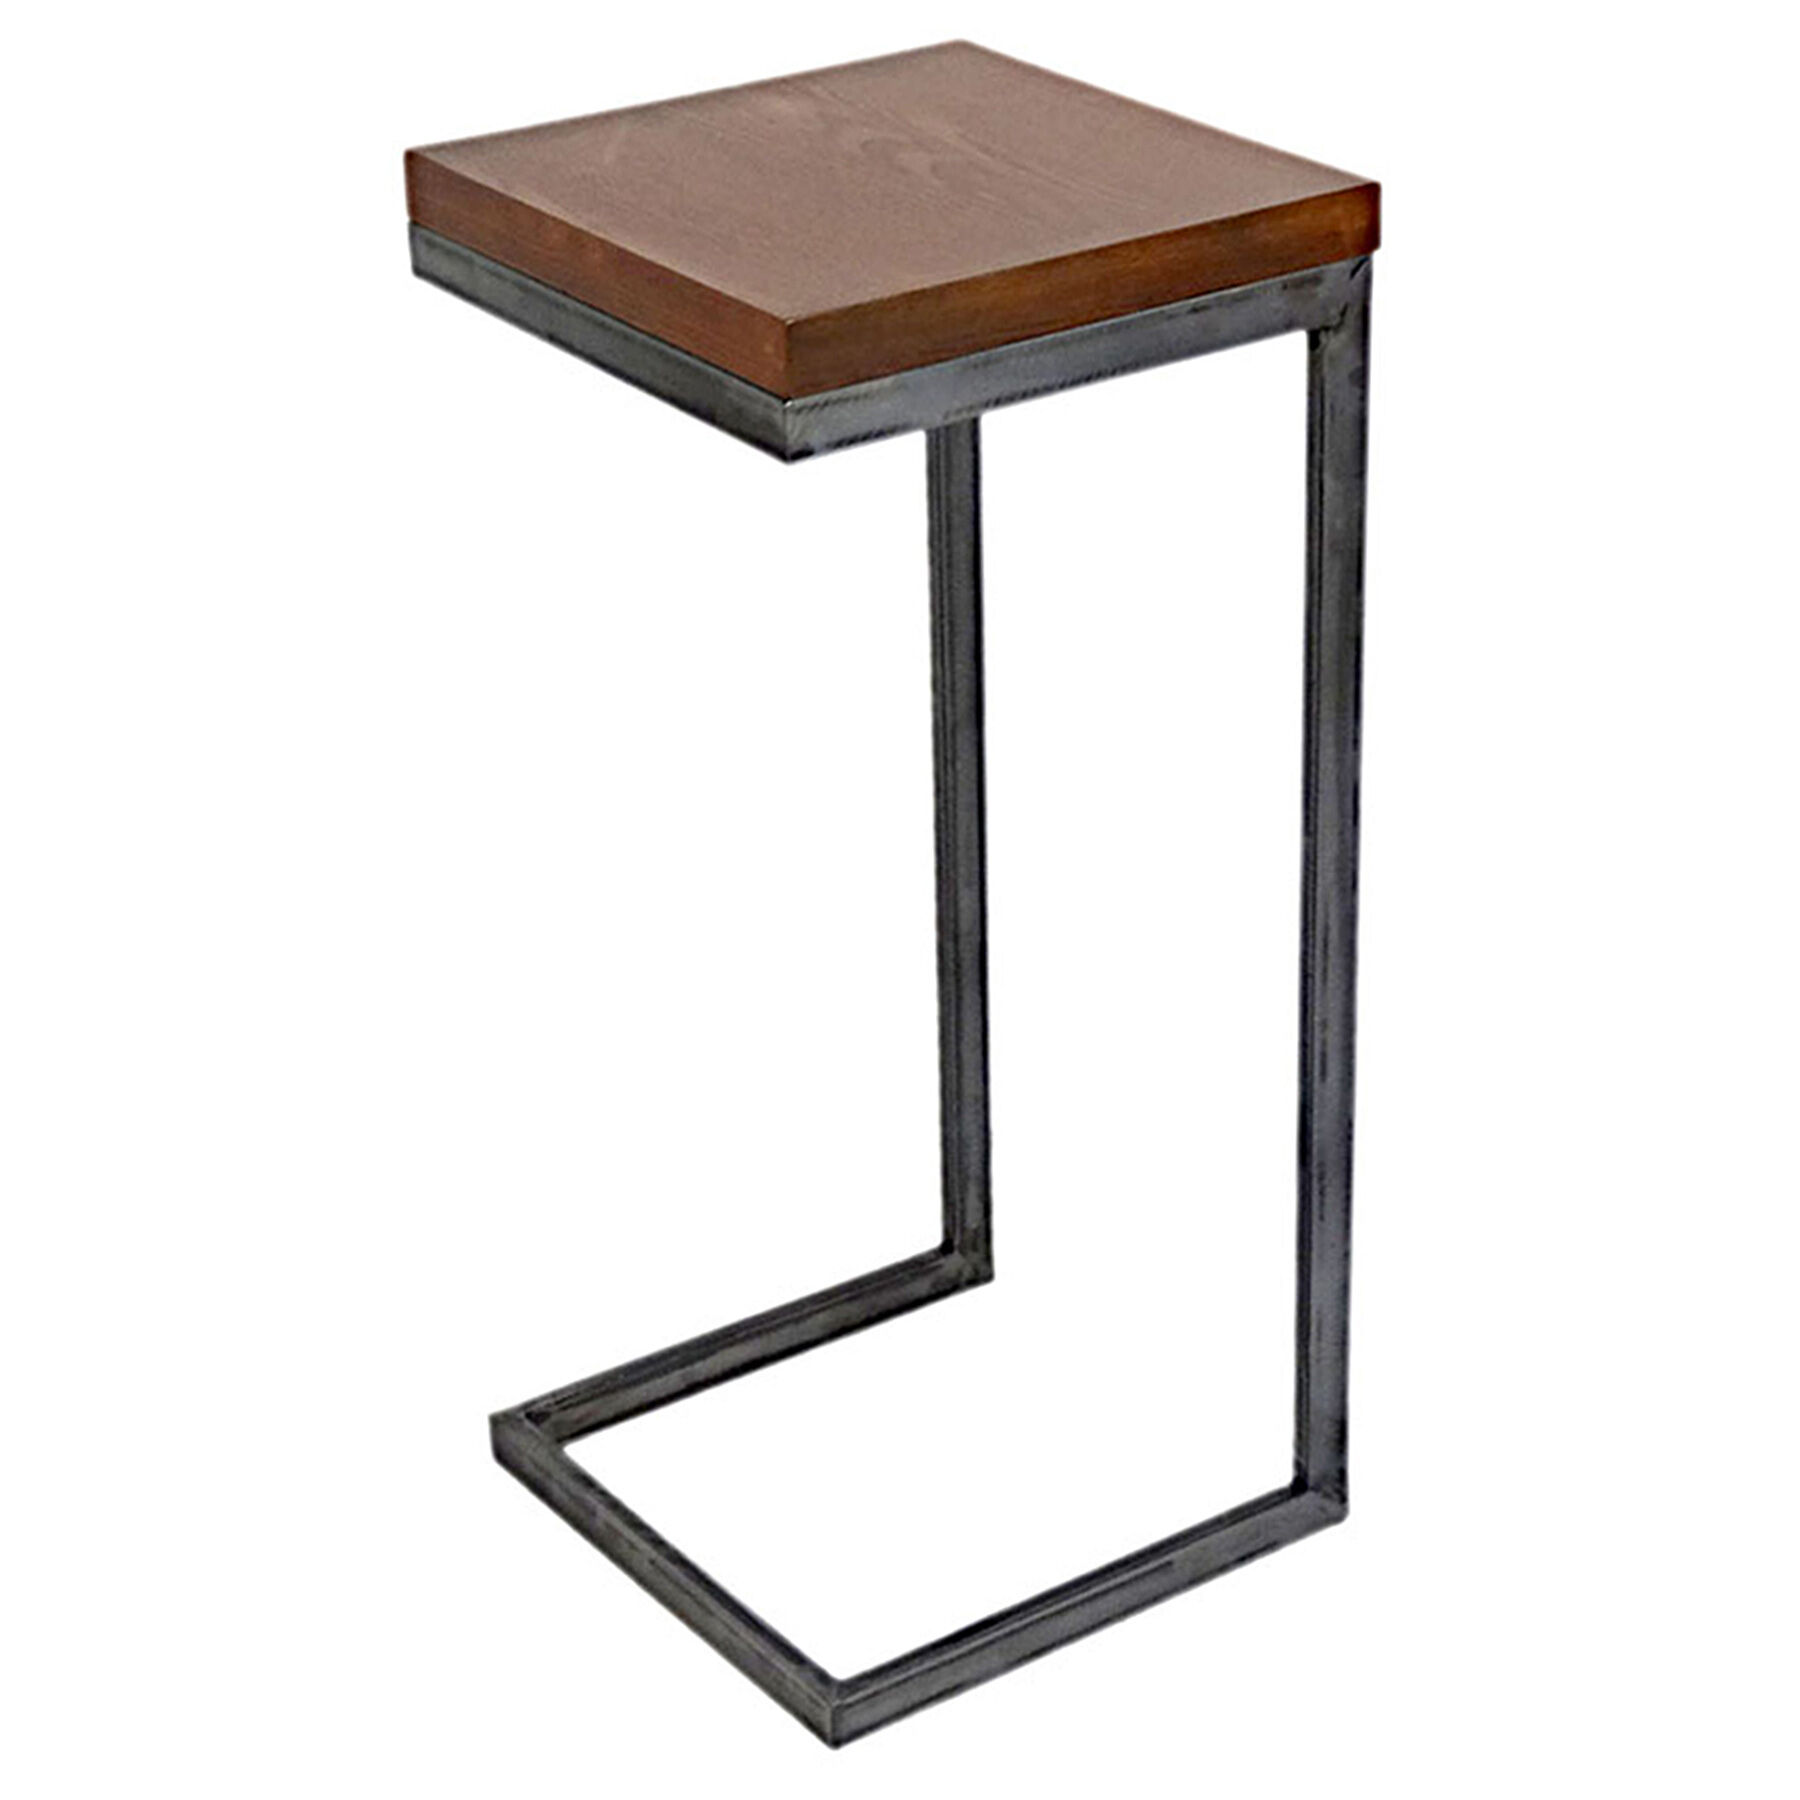 Accent Tables - Accent Table Collection   At Home Stores